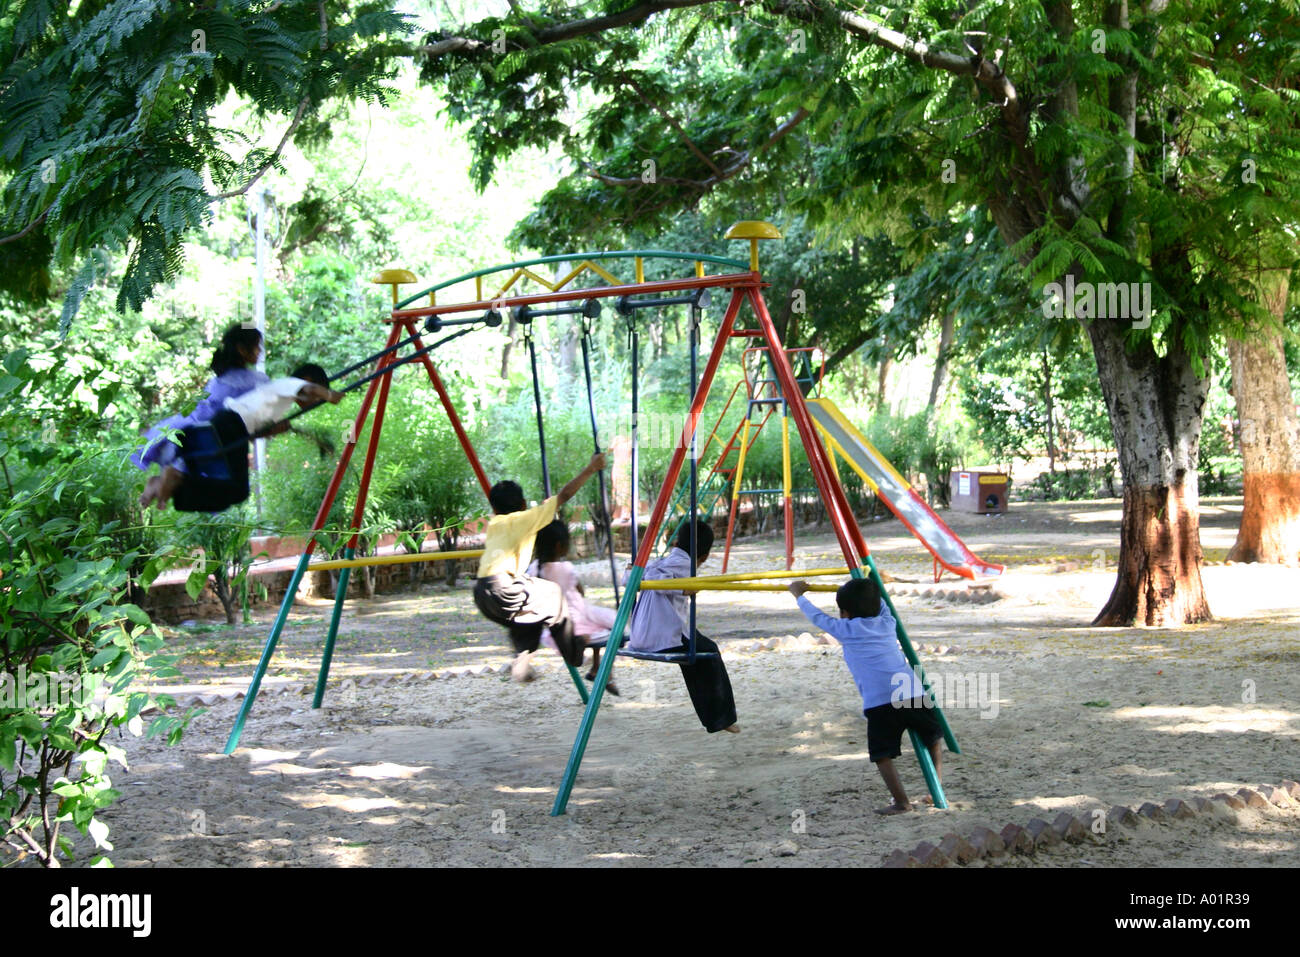 Children boys and girls playing and enjoying on swings in ...